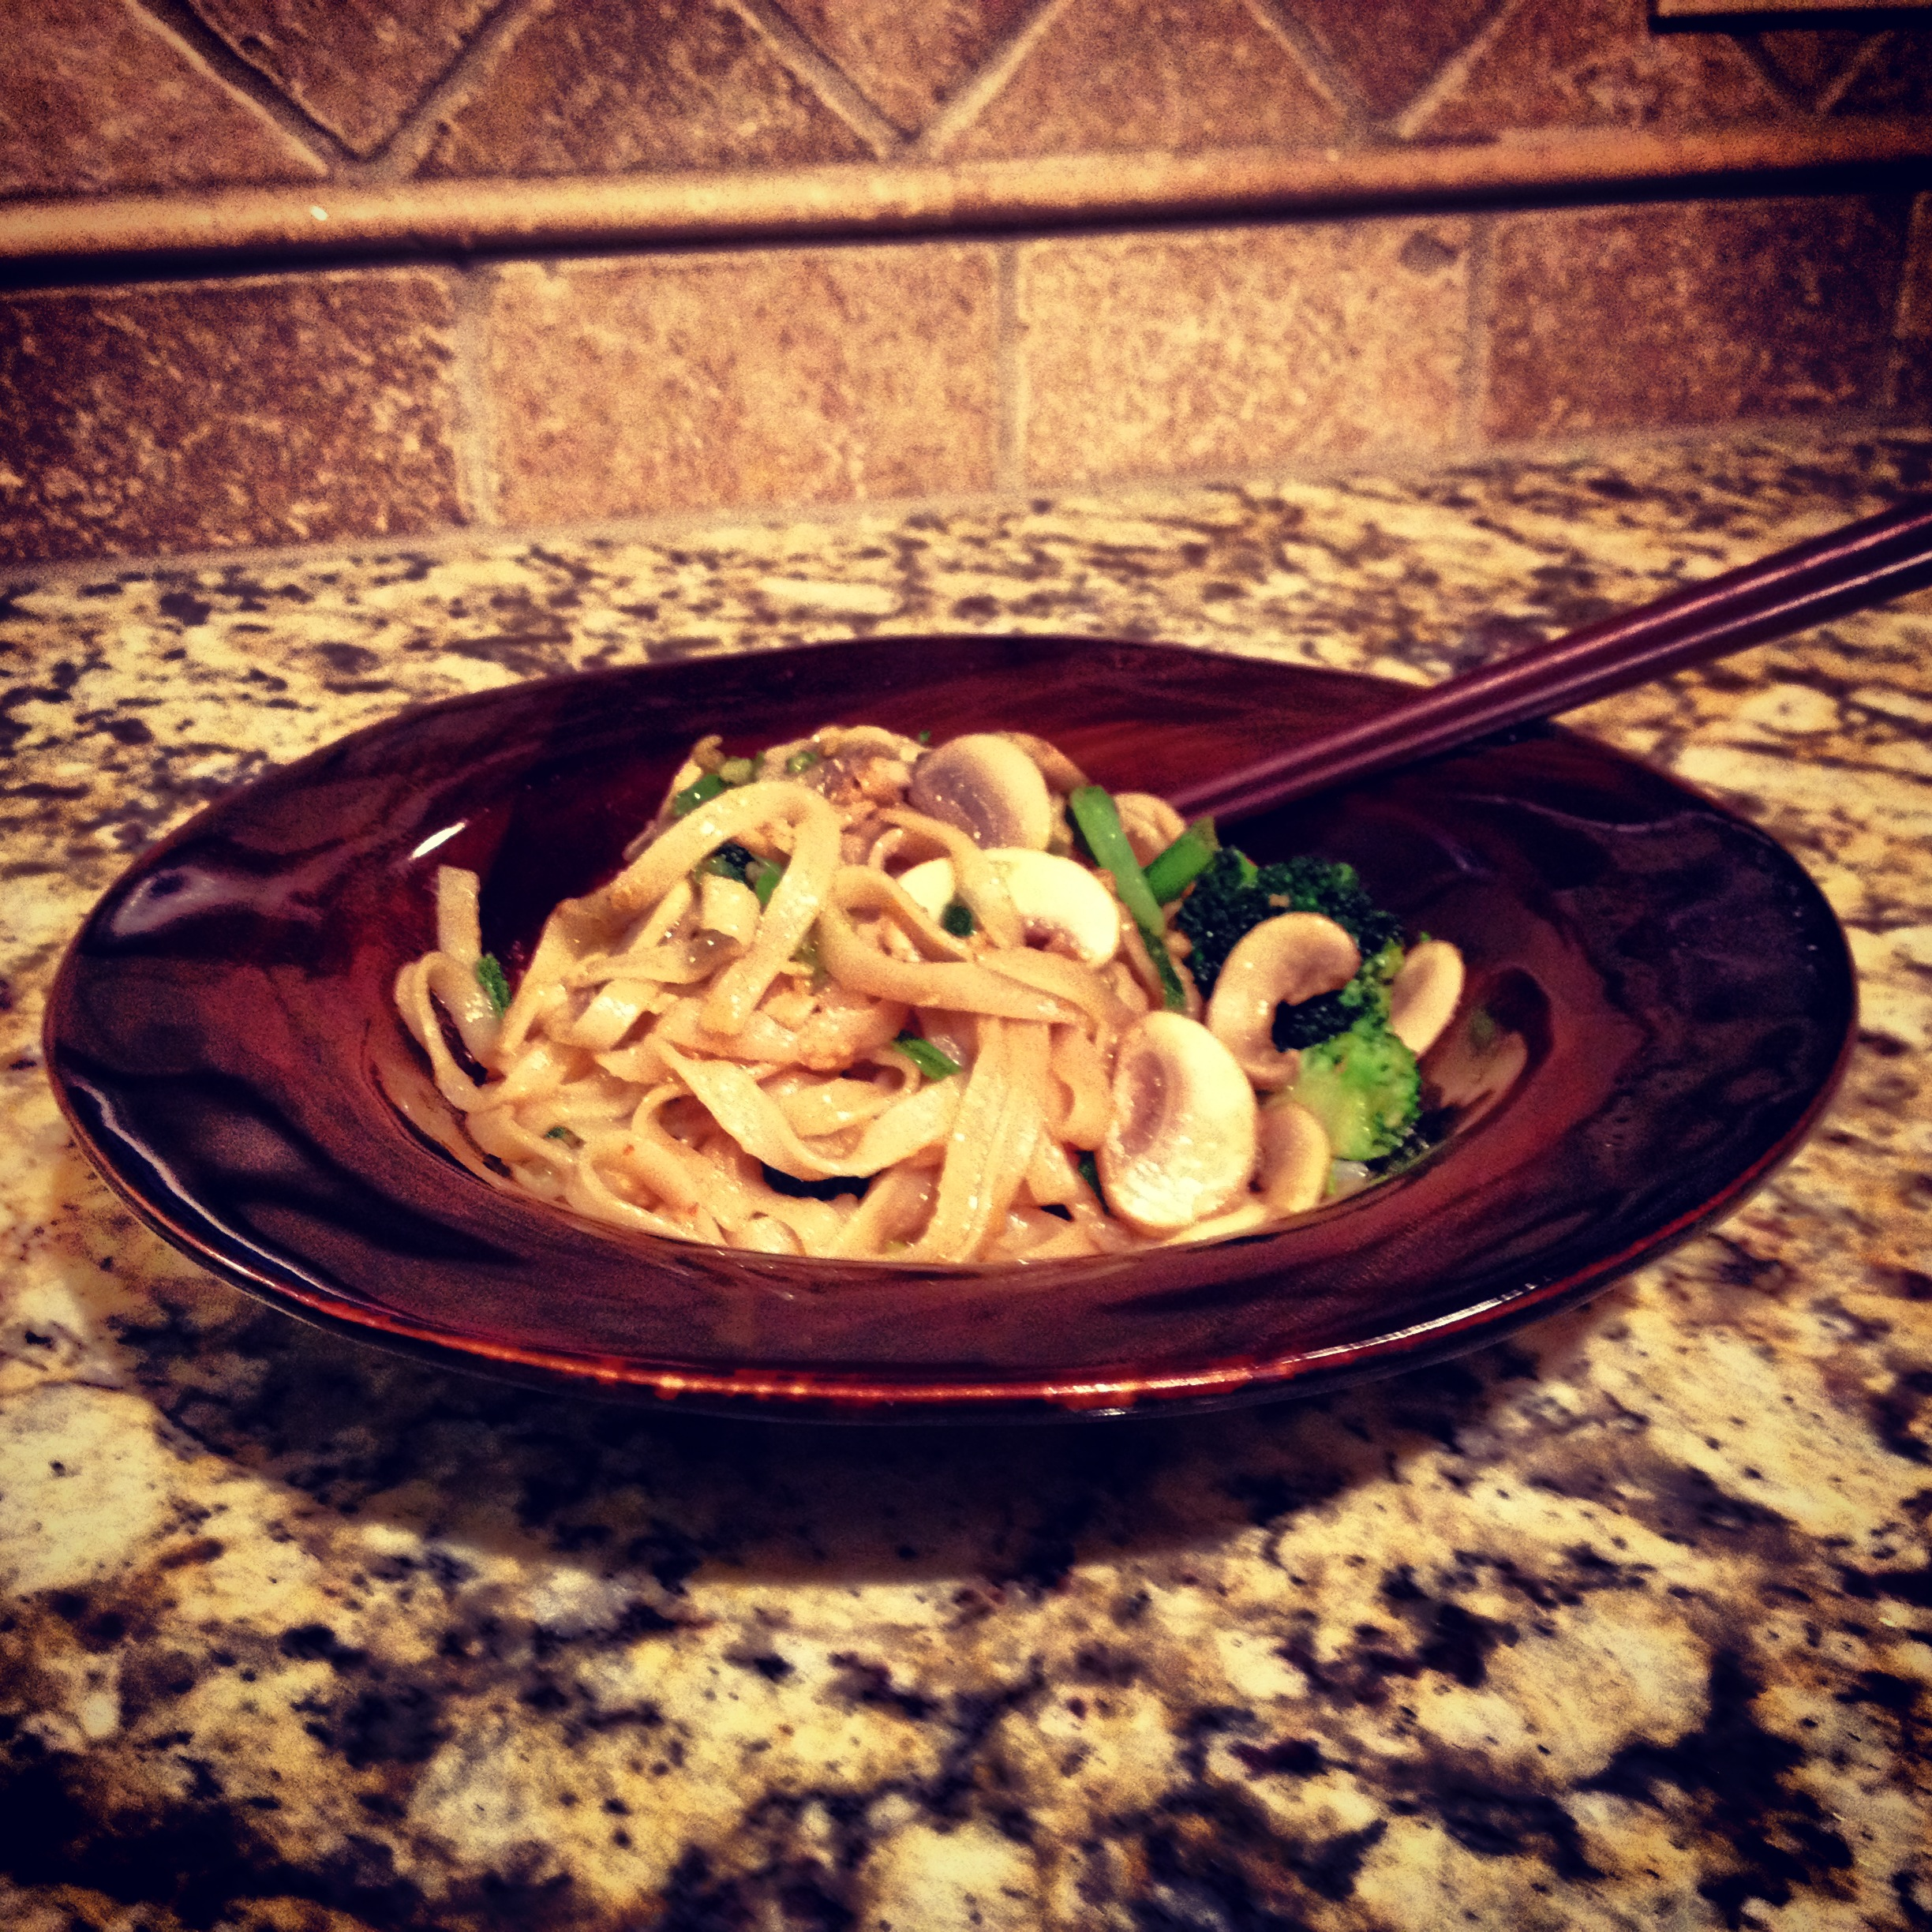 Mike's Asian Noodles with Peanut Sauce - yum!